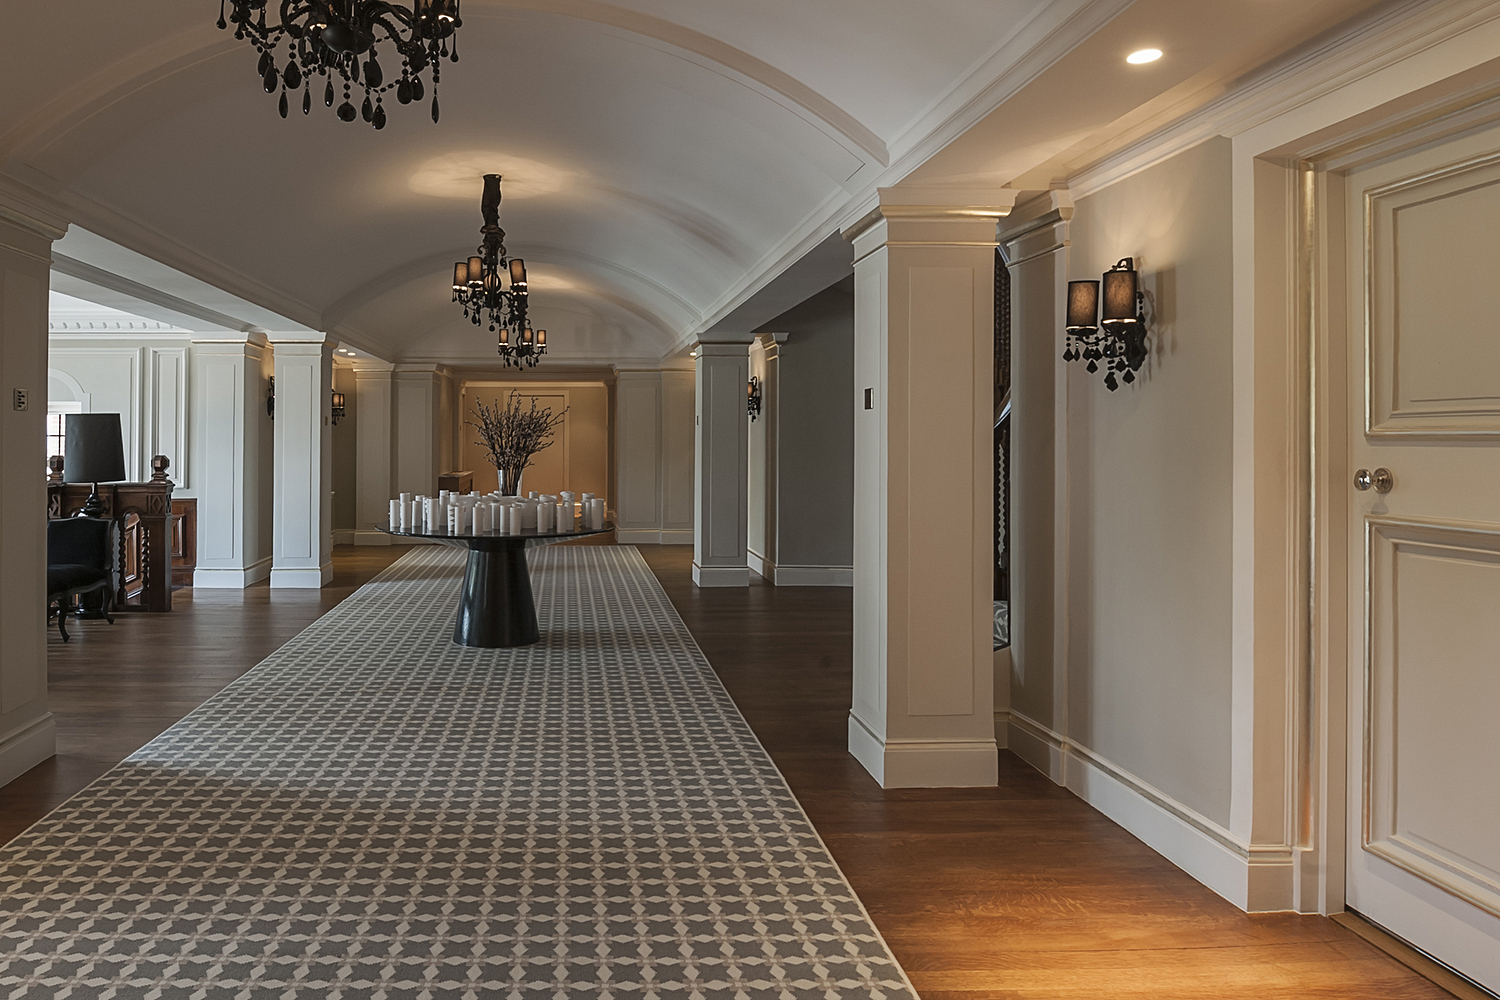 Grand hallway with candles, London house